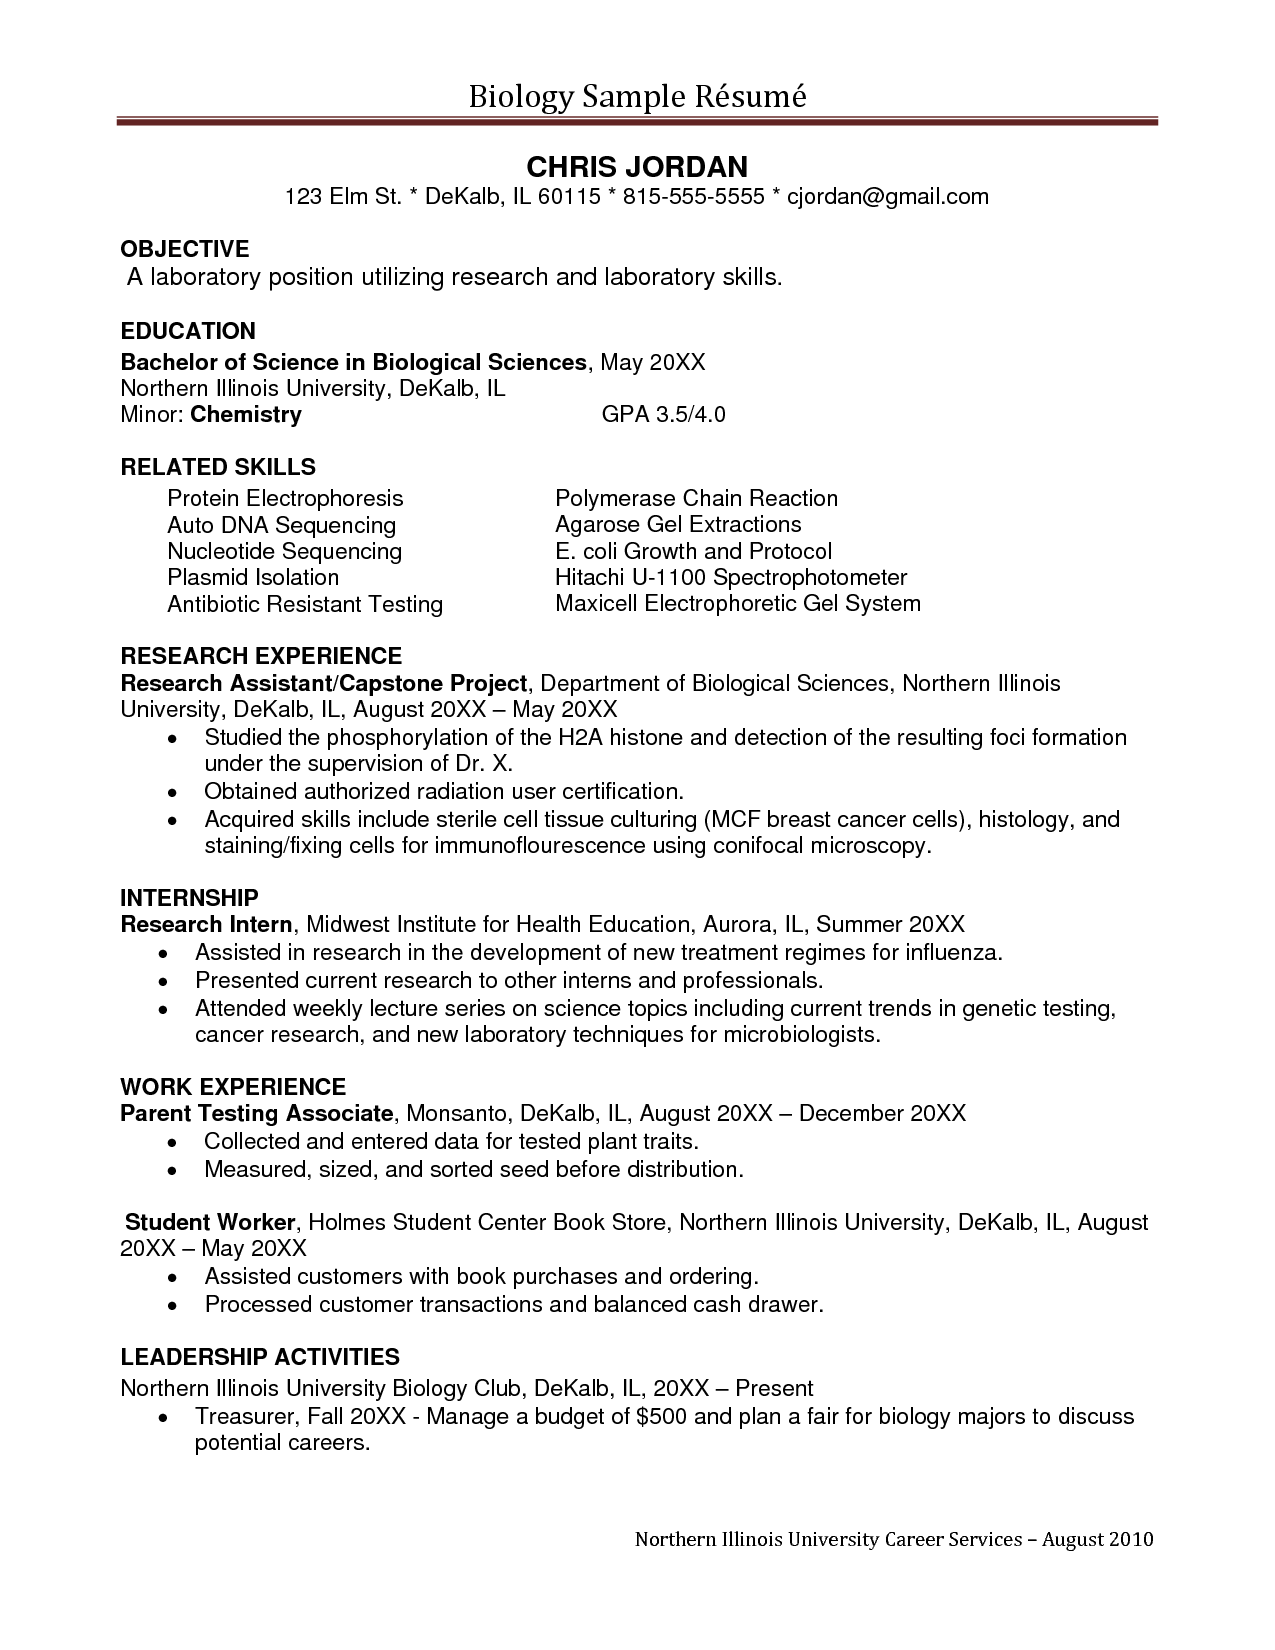 Sample, Undergraduate Research Assistant Resume Sample,ĺ Administrative  Assistant Resume Objective Examples, Medical  Writing An Objective For A Resume